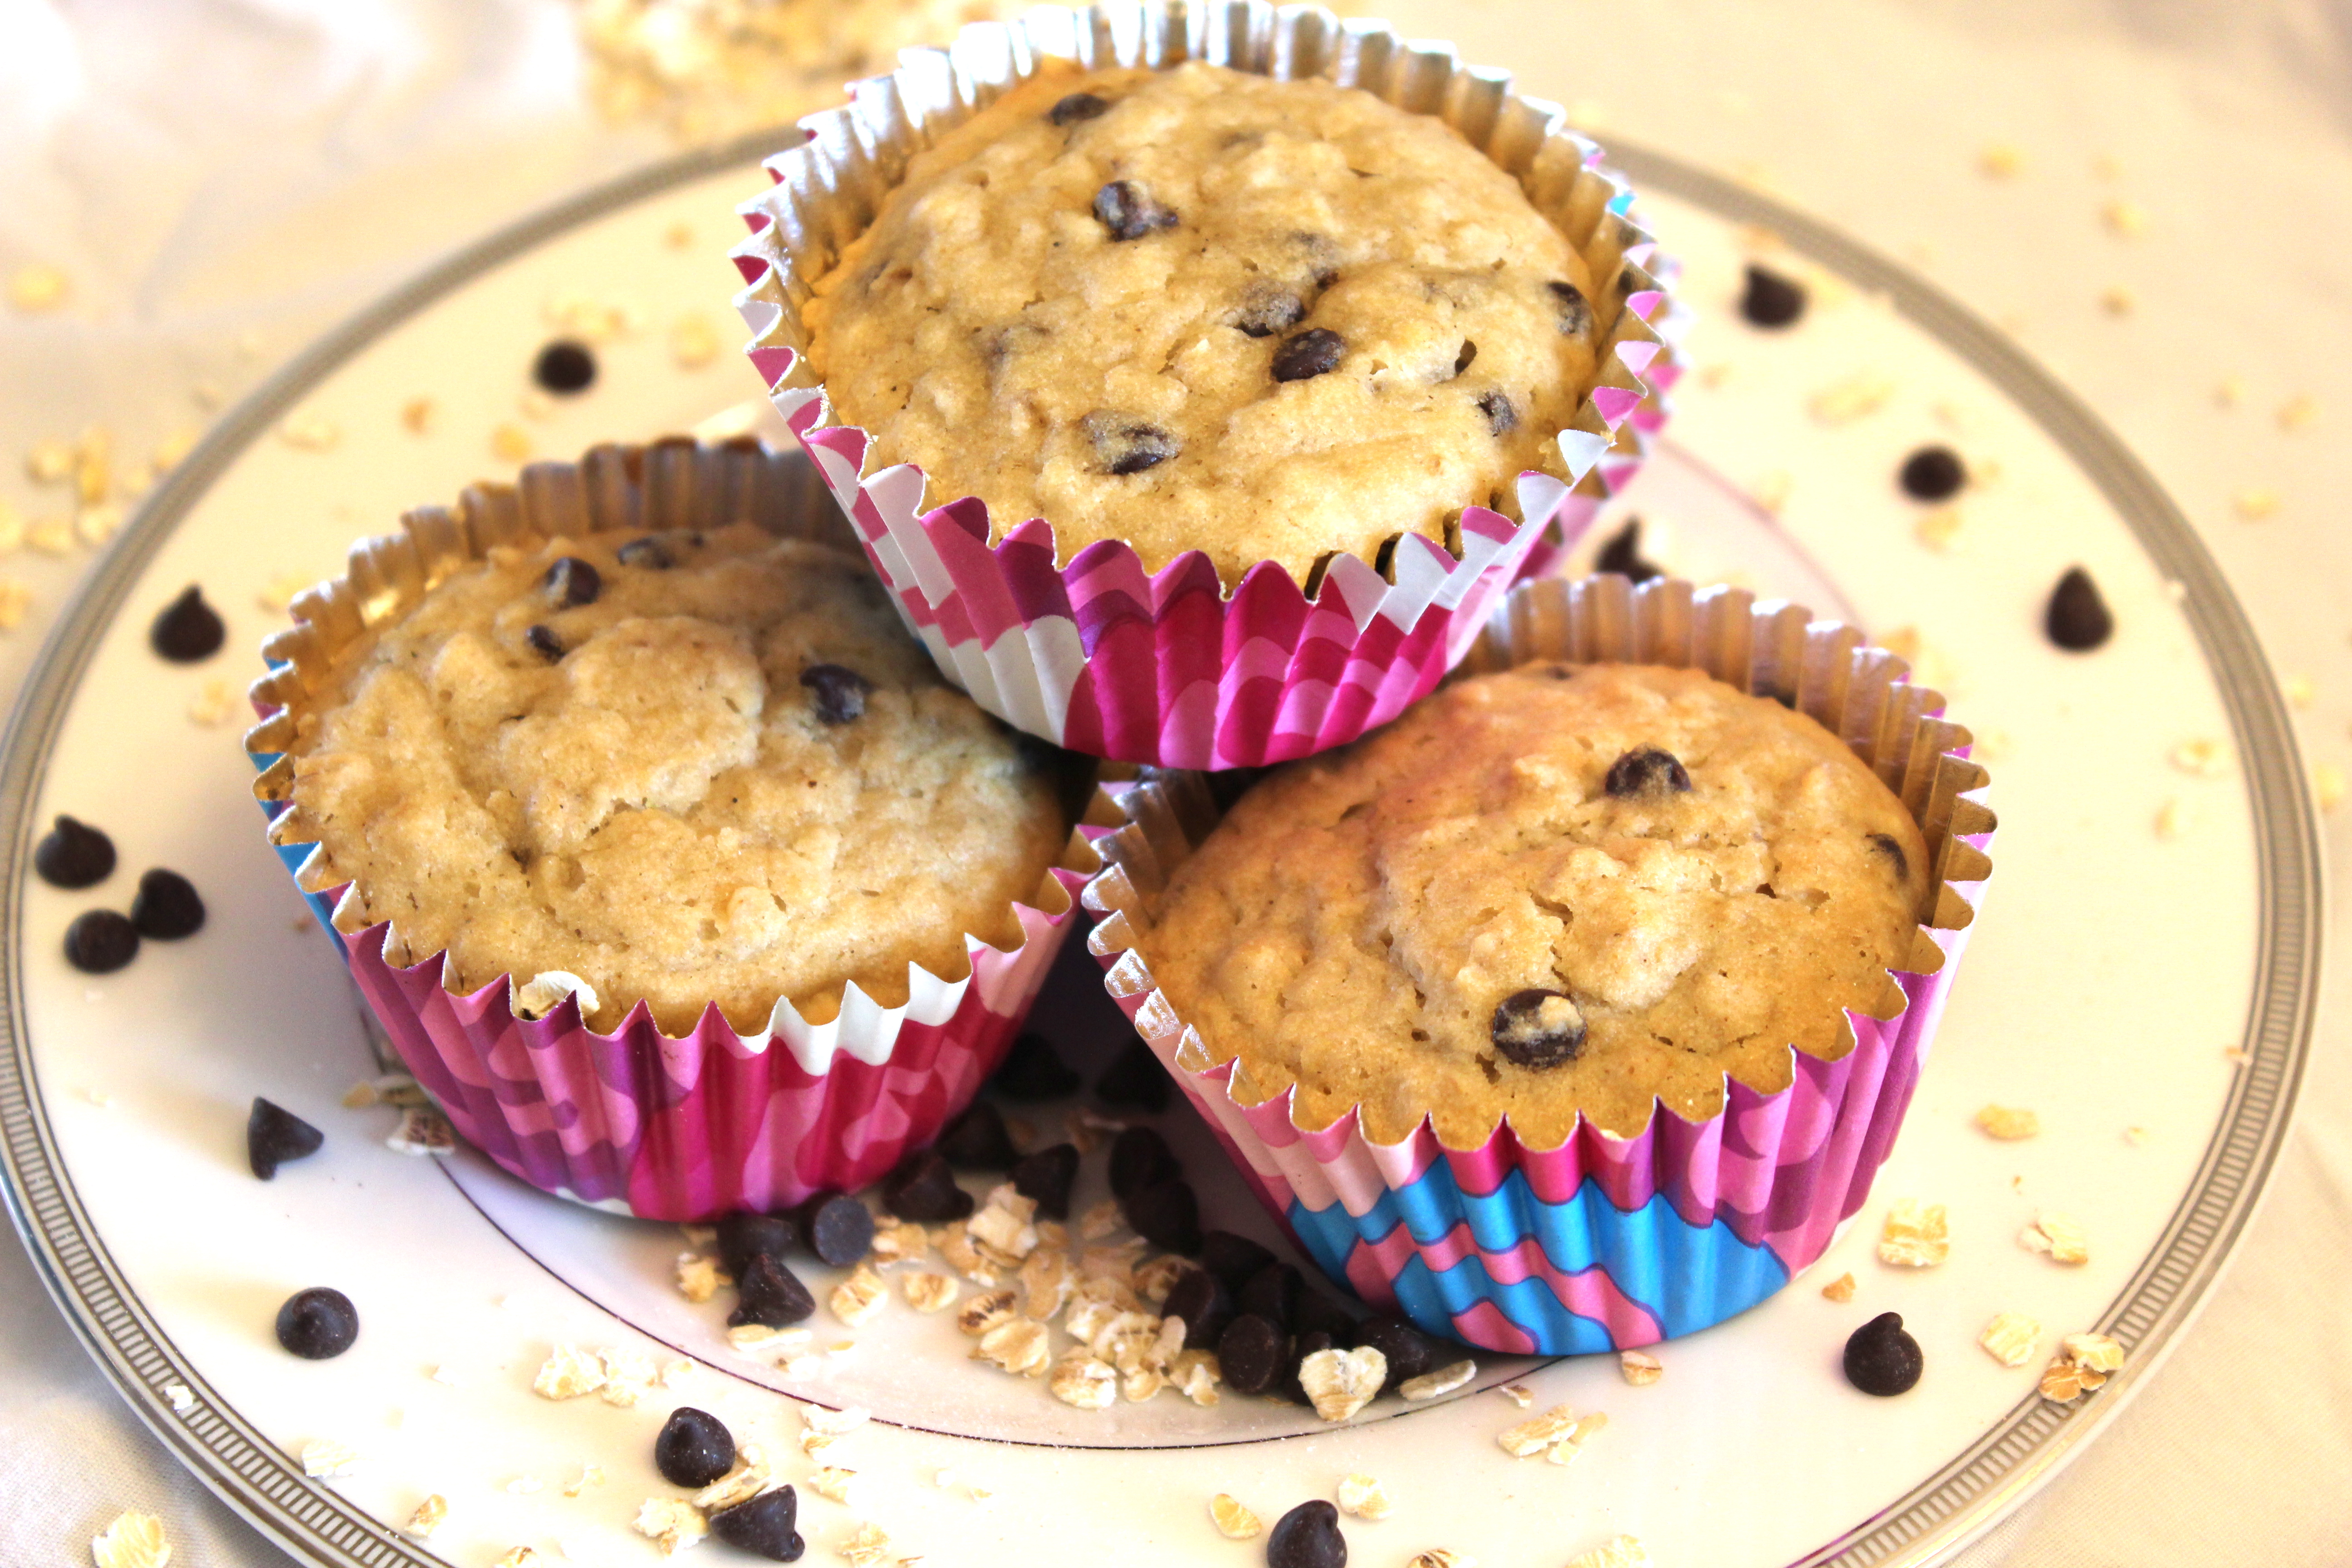 Gluten free oatmeal chocolate chip muffins – The Edible Cure